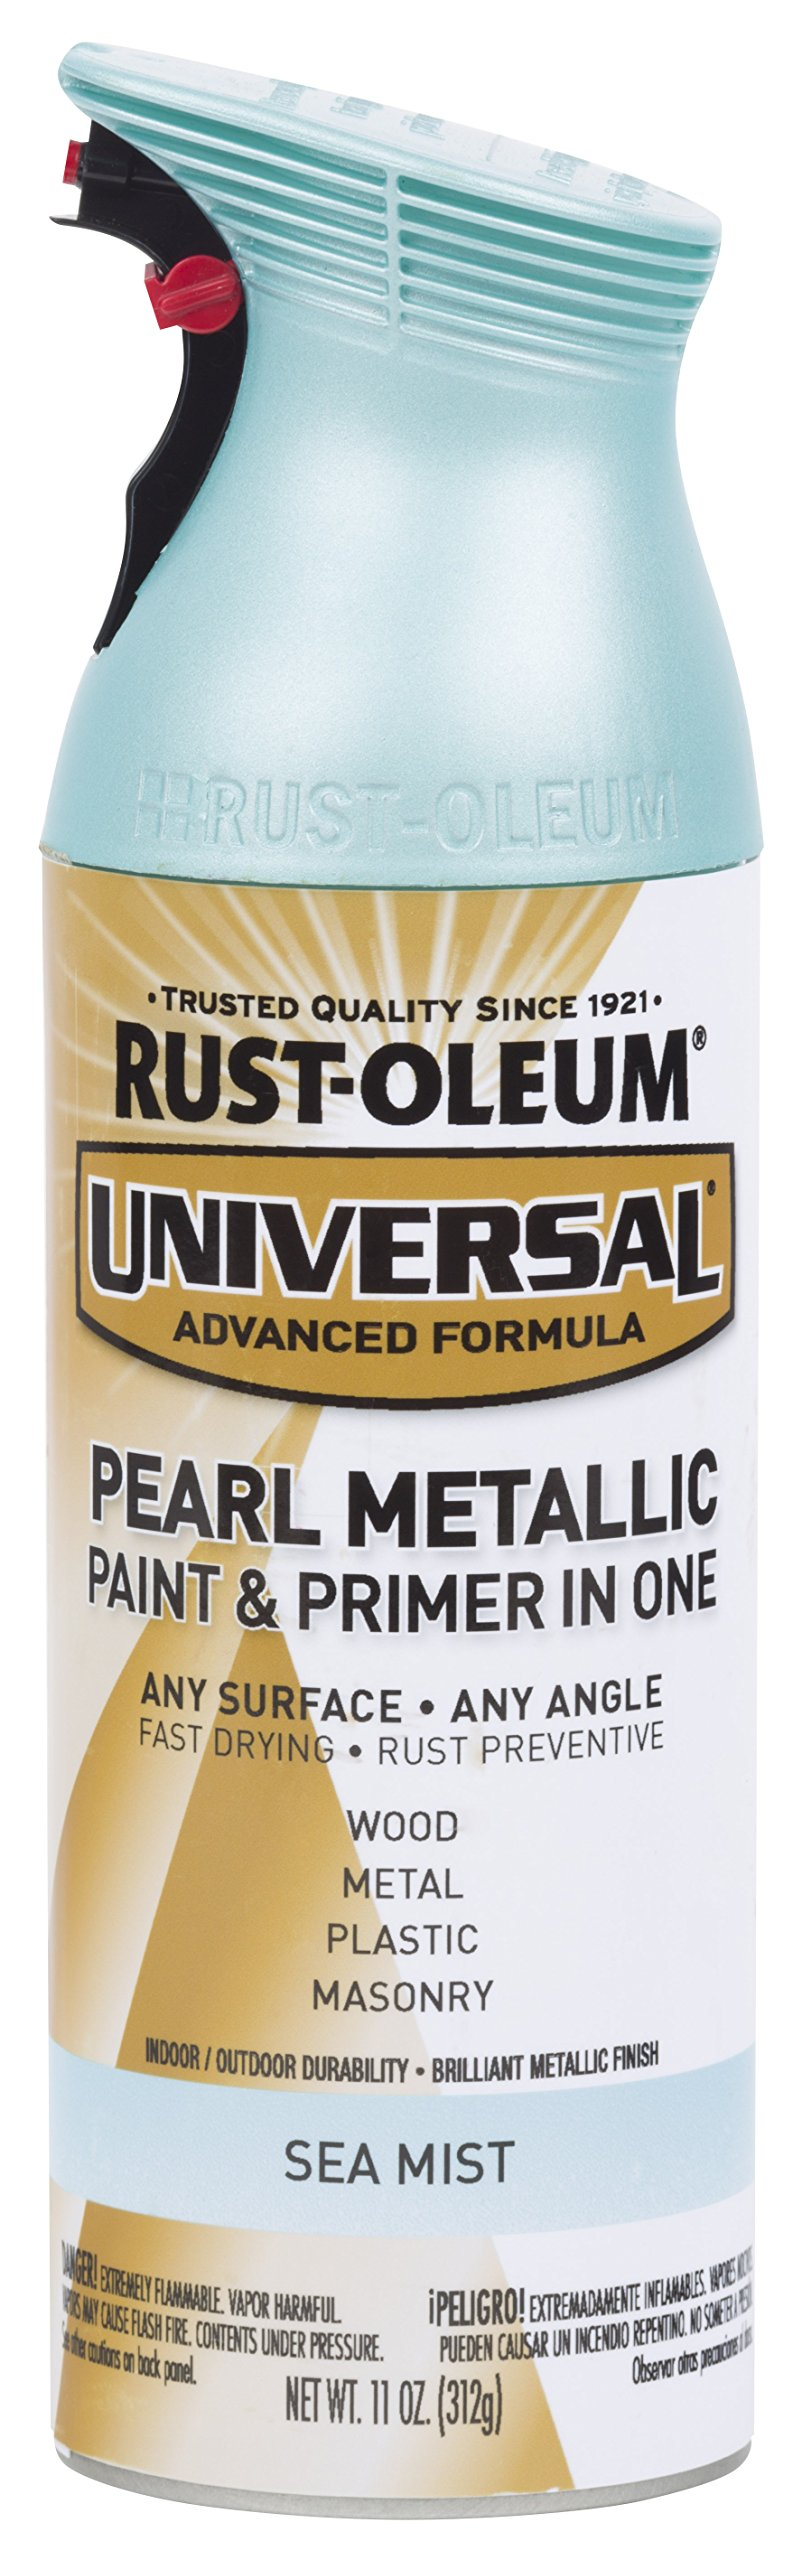 Rust-Oleum 301551 Universal All Surface Spray Paint, 11 oz, Pearl Metallic Sea Mist by Rust-Oleum (Image #1)